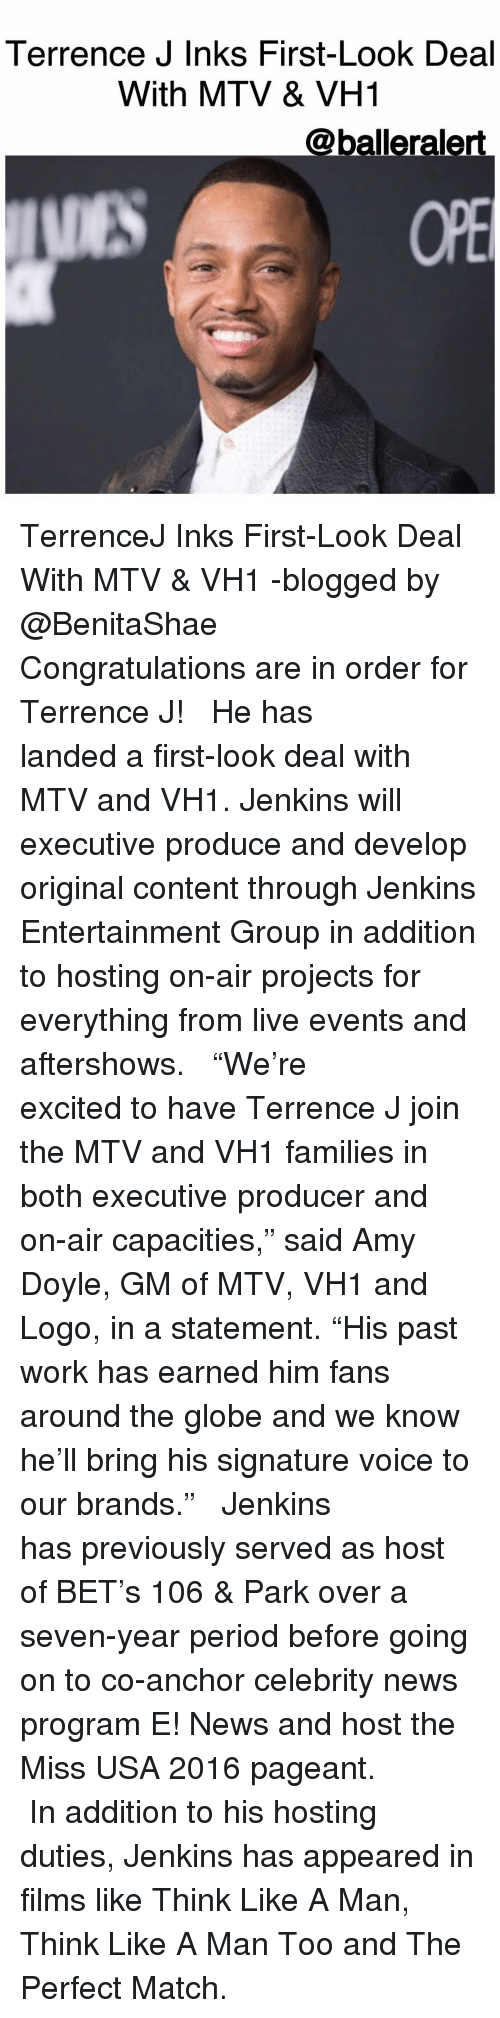 """executions: Terrence J Inks First-Look Deal  With MTV & VH1  @balleralert TerrenceJ Inks First-Look Deal With MTV & VH1 -blogged by @BenitaShae ⠀⠀⠀⠀⠀⠀⠀ ⠀⠀⠀⠀⠀⠀⠀ Congratulations are in order for Terrence J! ⠀⠀⠀⠀⠀⠀⠀ ⠀⠀⠀⠀⠀⠀⠀ He has landed a first-look deal with MTV and VH1. Jenkins will executive produce and develop original content through Jenkins Entertainment Group in addition to hosting on-air projects for everything from live events and aftershows. ⠀⠀⠀⠀⠀⠀⠀ ⠀⠀⠀⠀⠀⠀⠀ """"We're excited to have Terrence J join the MTV and VH1 families in both executive producer and on-air capacities,"""" said Amy Doyle, GM of MTV, VH1 and Logo, in a statement. """"His past work has earned him fans around the globe and we know he'll bring his signature voice to our brands."""" ⠀⠀⠀⠀⠀⠀⠀ ⠀⠀⠀⠀⠀⠀⠀ Jenkins has previously served as host of BET's 106 & Park over a seven-year period before going on to co-anchor celebrity news program E! News and host the Miss USA 2016 pageant. ⠀⠀⠀⠀⠀⠀⠀ ⠀⠀⠀⠀⠀⠀⠀ In addition to his hosting duties, Jenkins has appeared in films like Think Like A Man, Think Like A Man Too and The Perfect Match."""